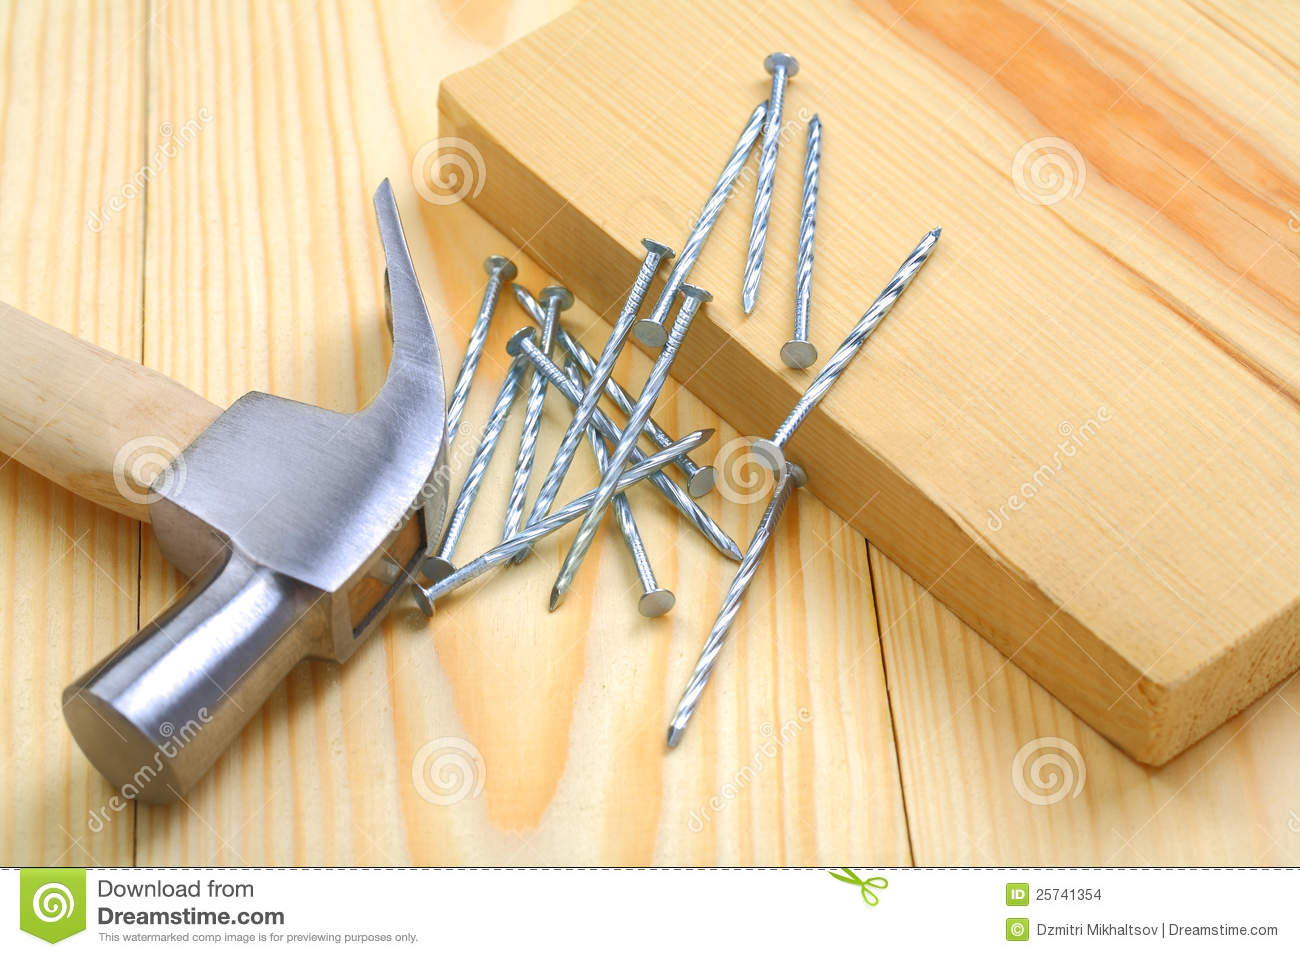 Claw hammer with nails and timber on table